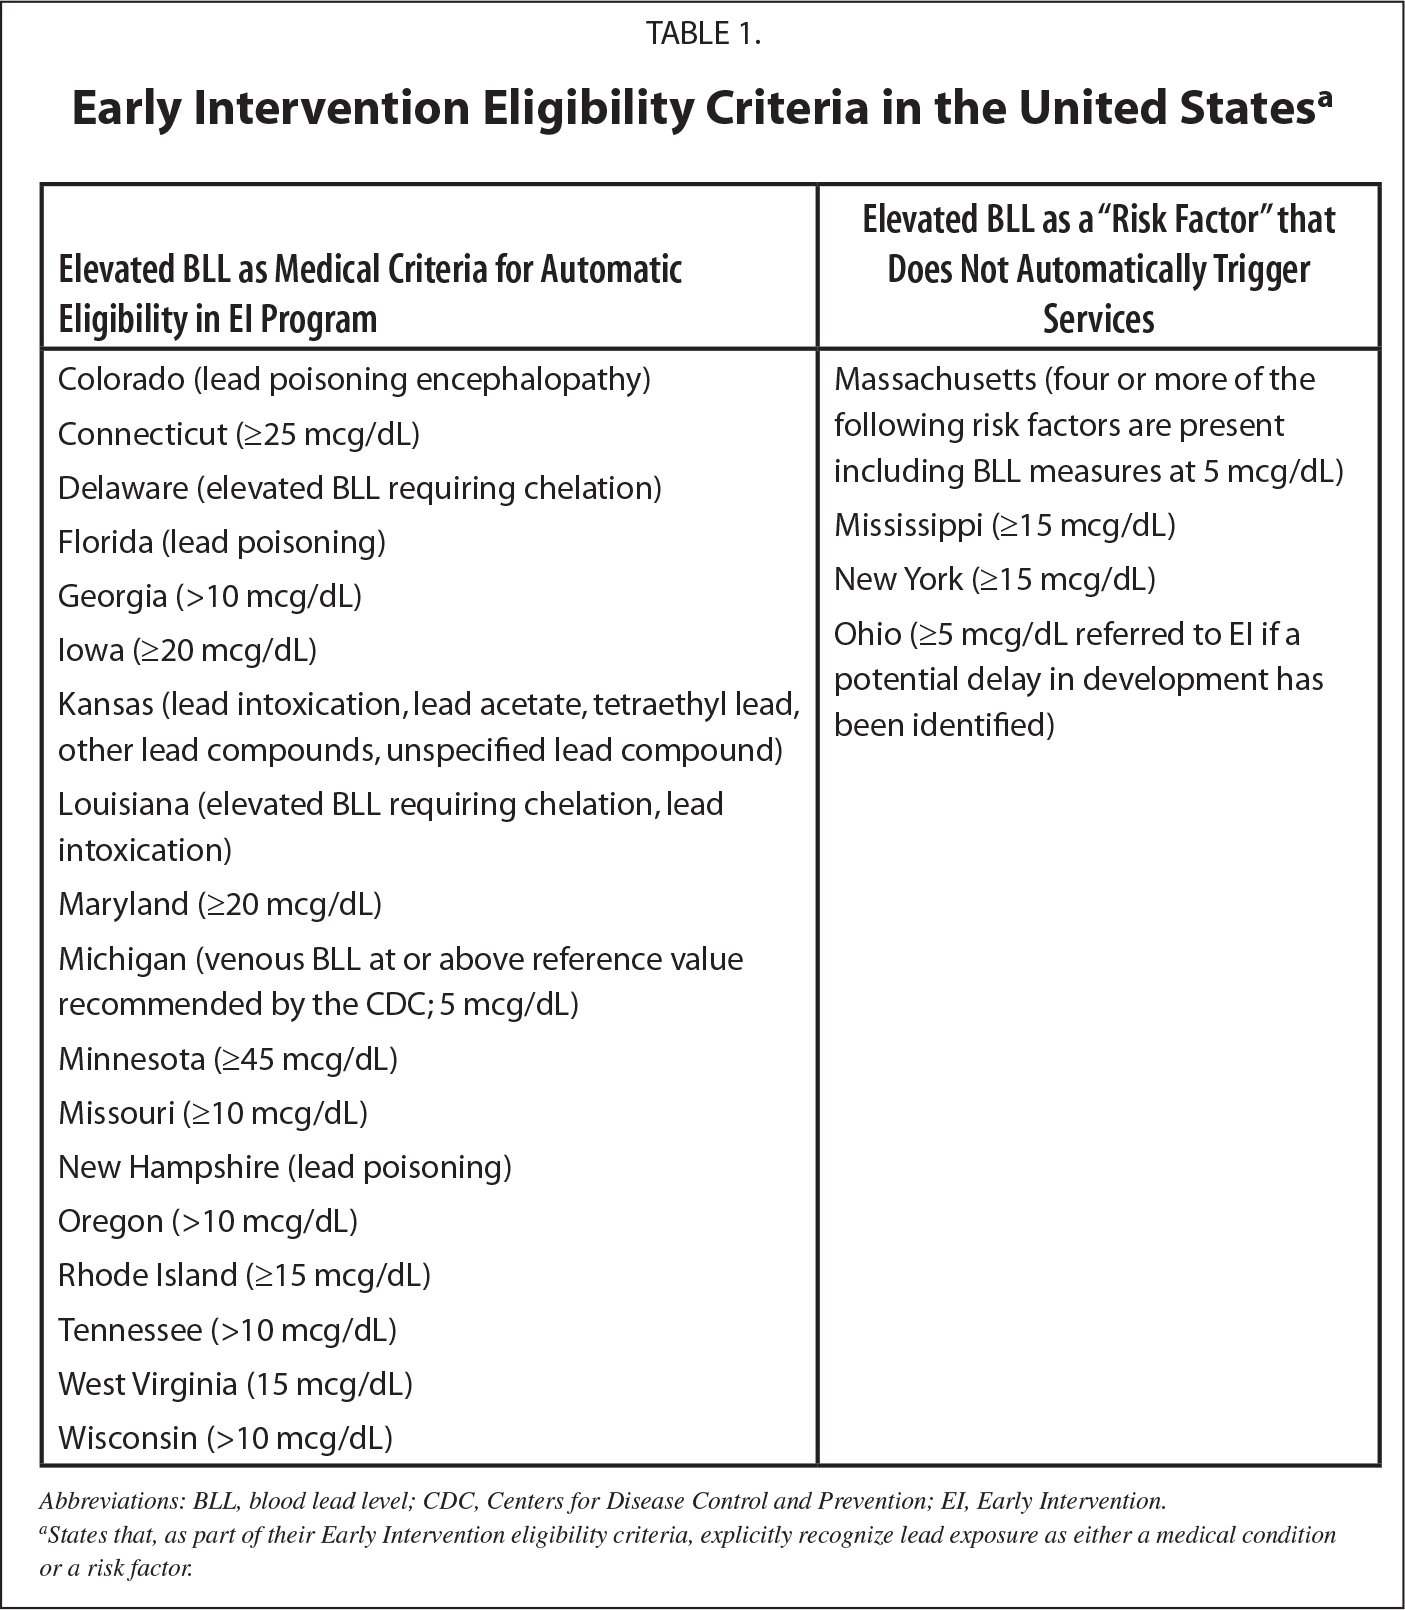 Early Intervention Eligibility Criteria in the United Statesa